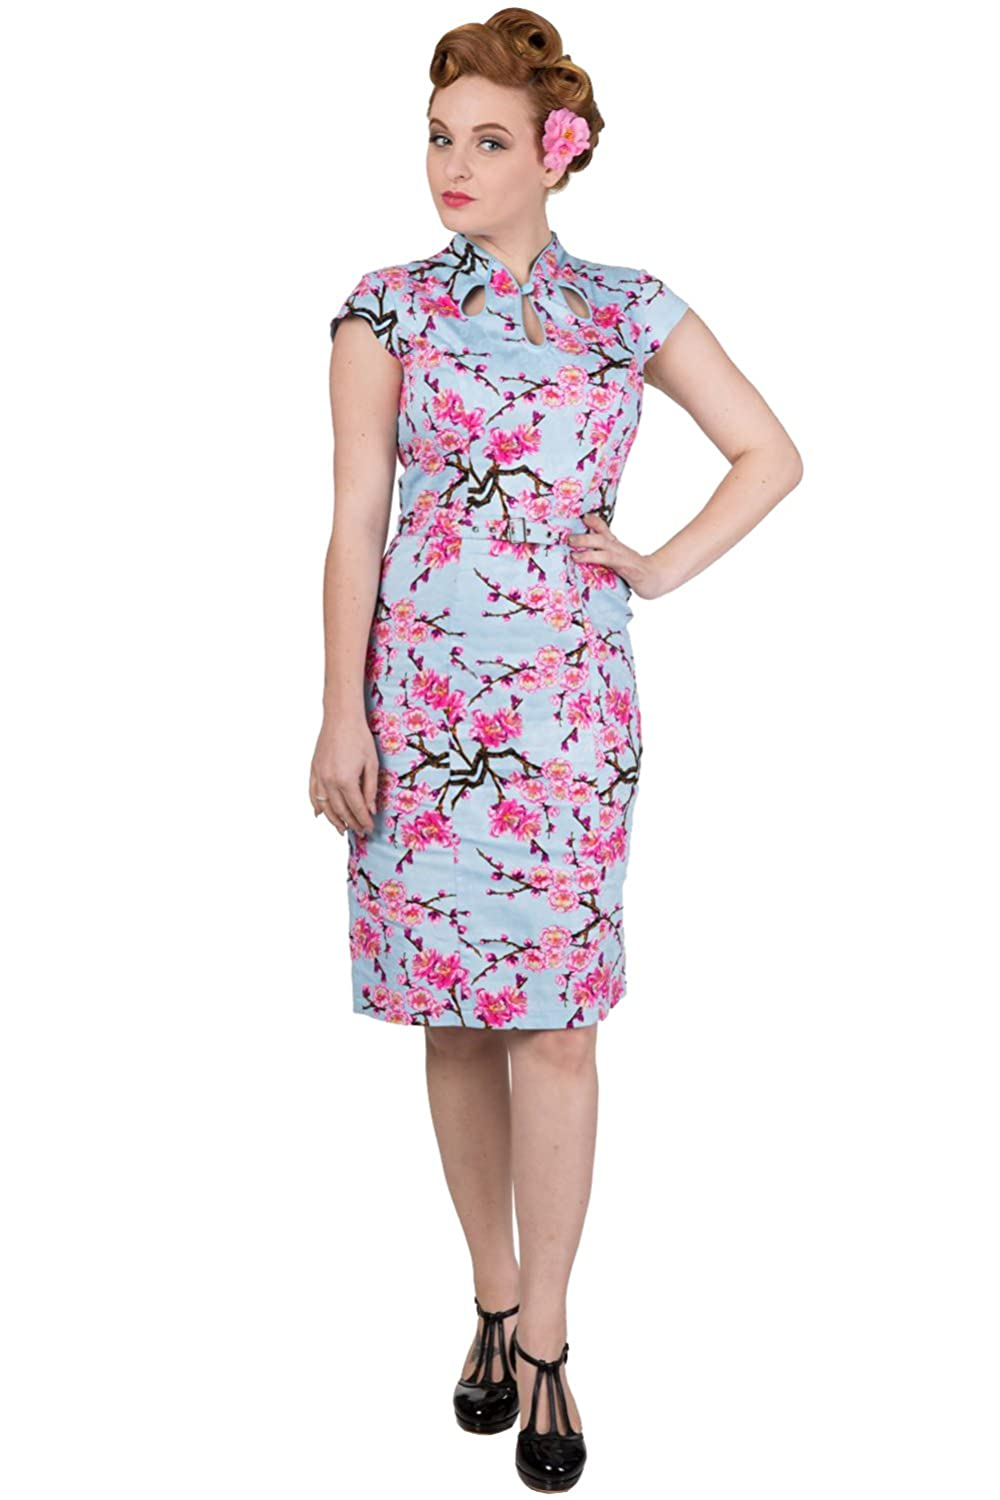 Retro Tiki, Tropical, Hawaiian Style Dresses Banned Last Dance Pencil Rockabilly Dress $51.29 AT vintagedancer.com